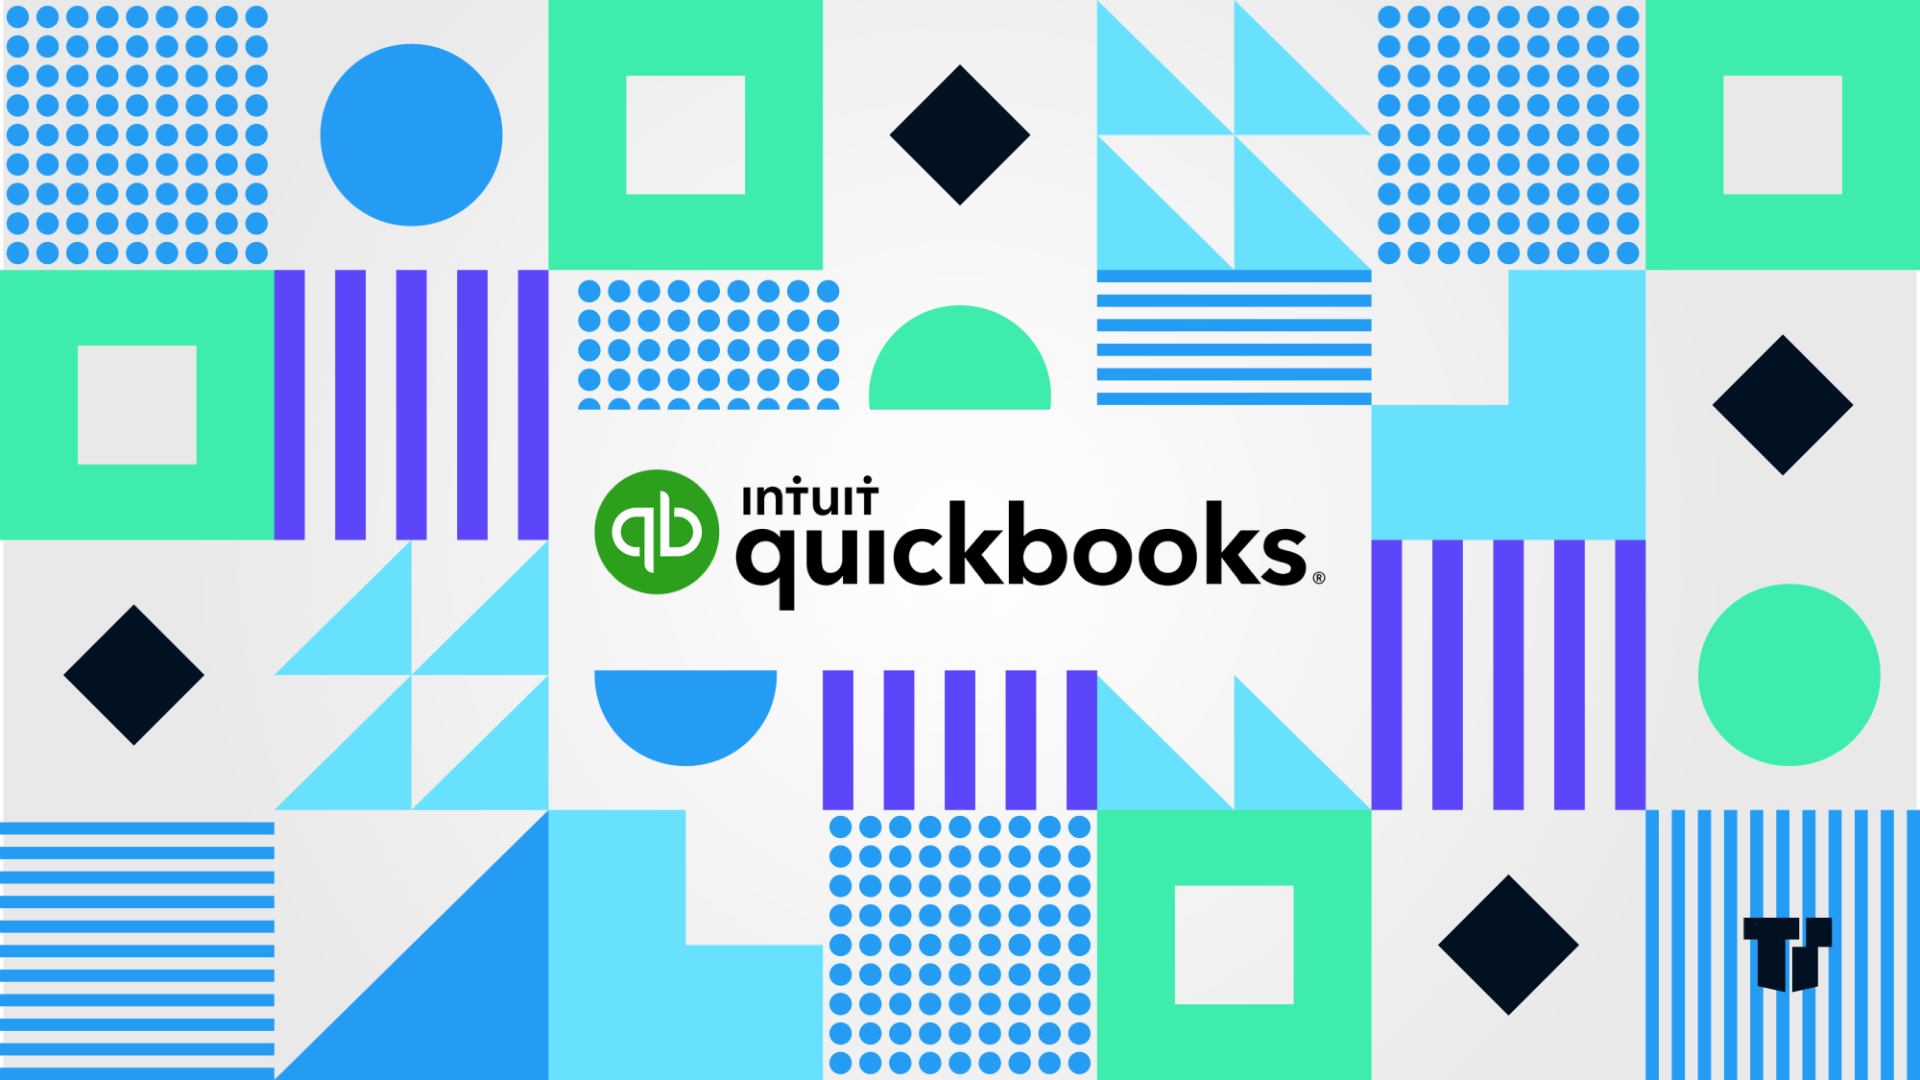 QuickBooks 2016 vs. 2018: Features and Comparisons cover image